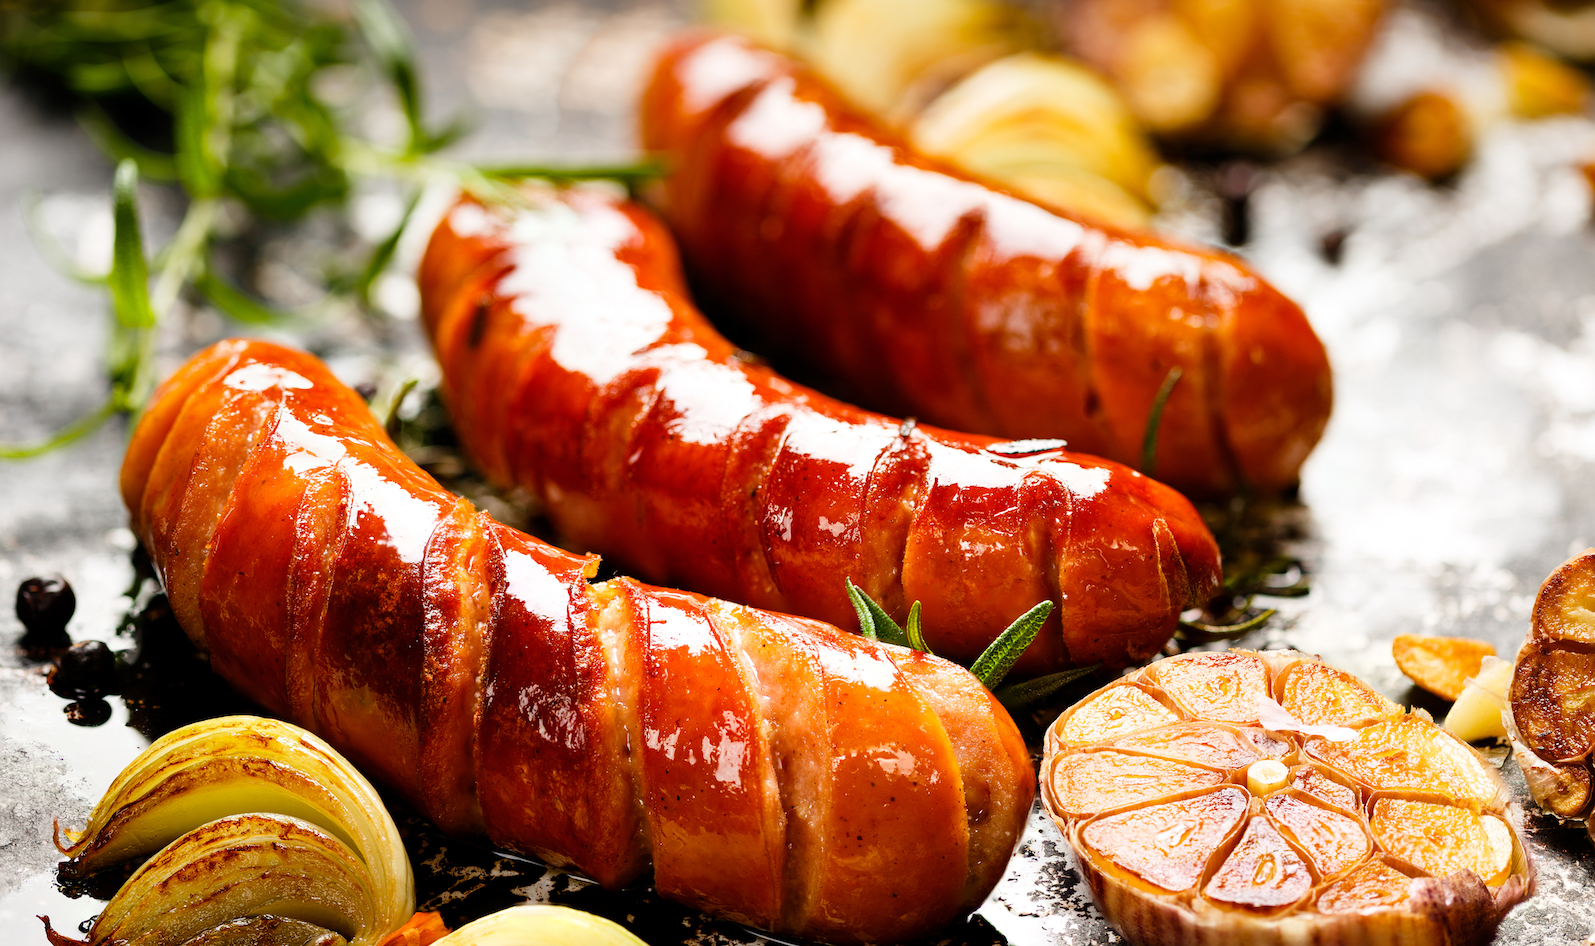 According to an Italian research team, allowing the sausage to ferment spontaneously produces a superior flavor.